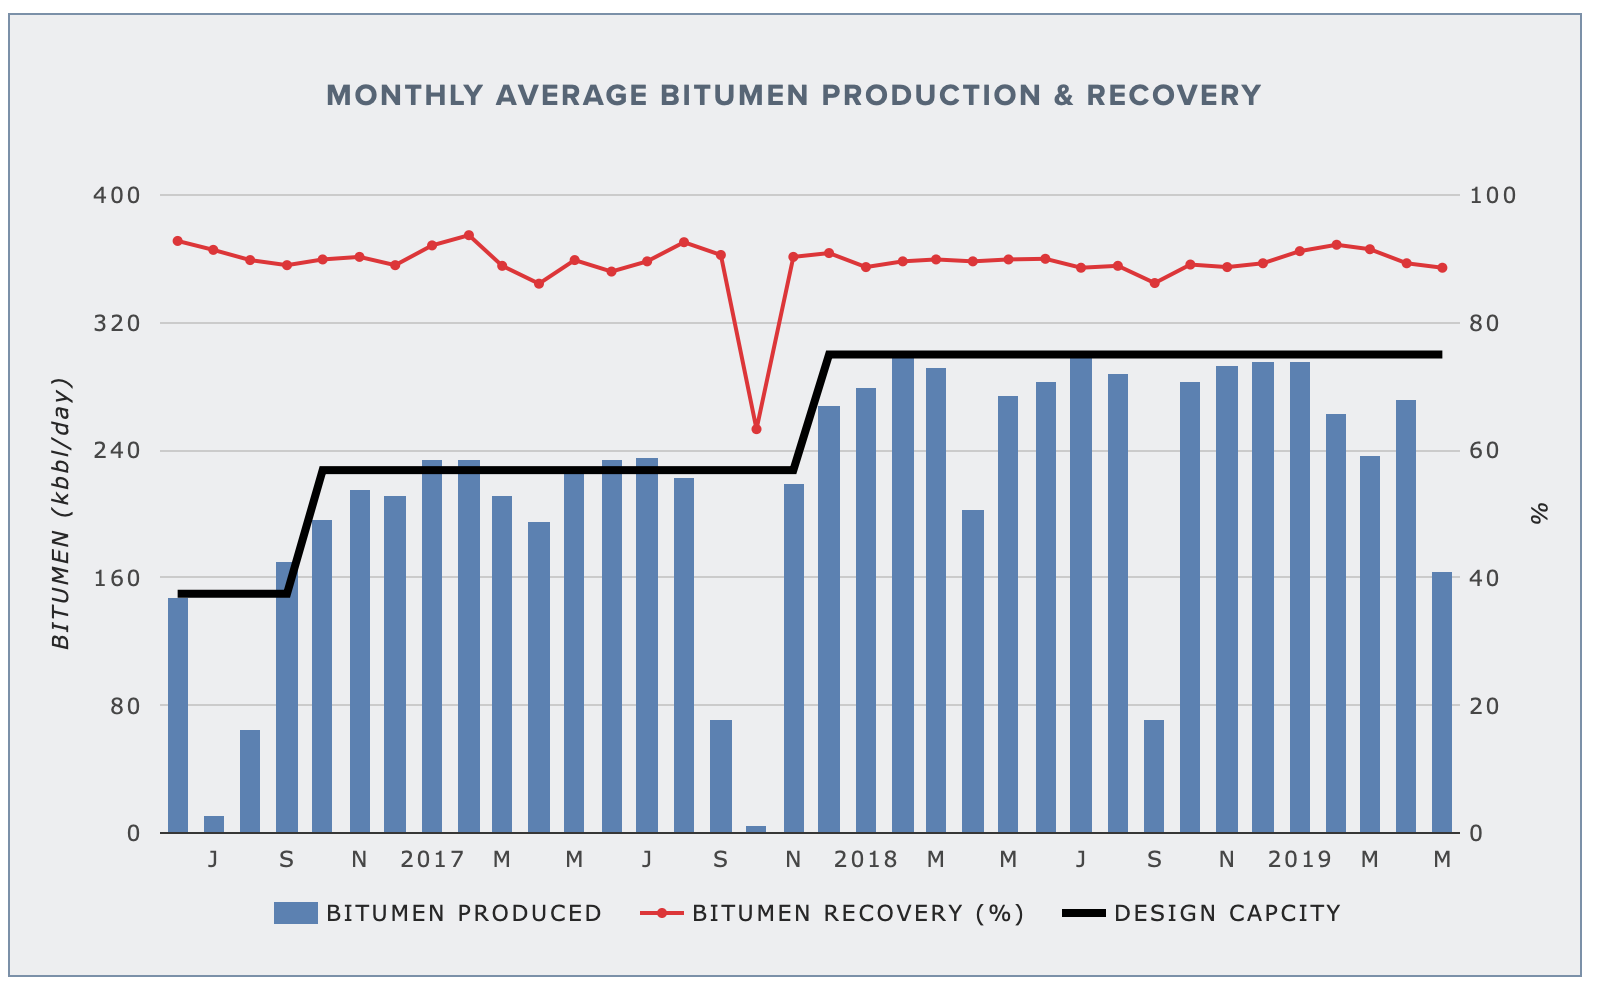 HORIZON MINE — BITUMEN PRODUCTION AND RECOVERY